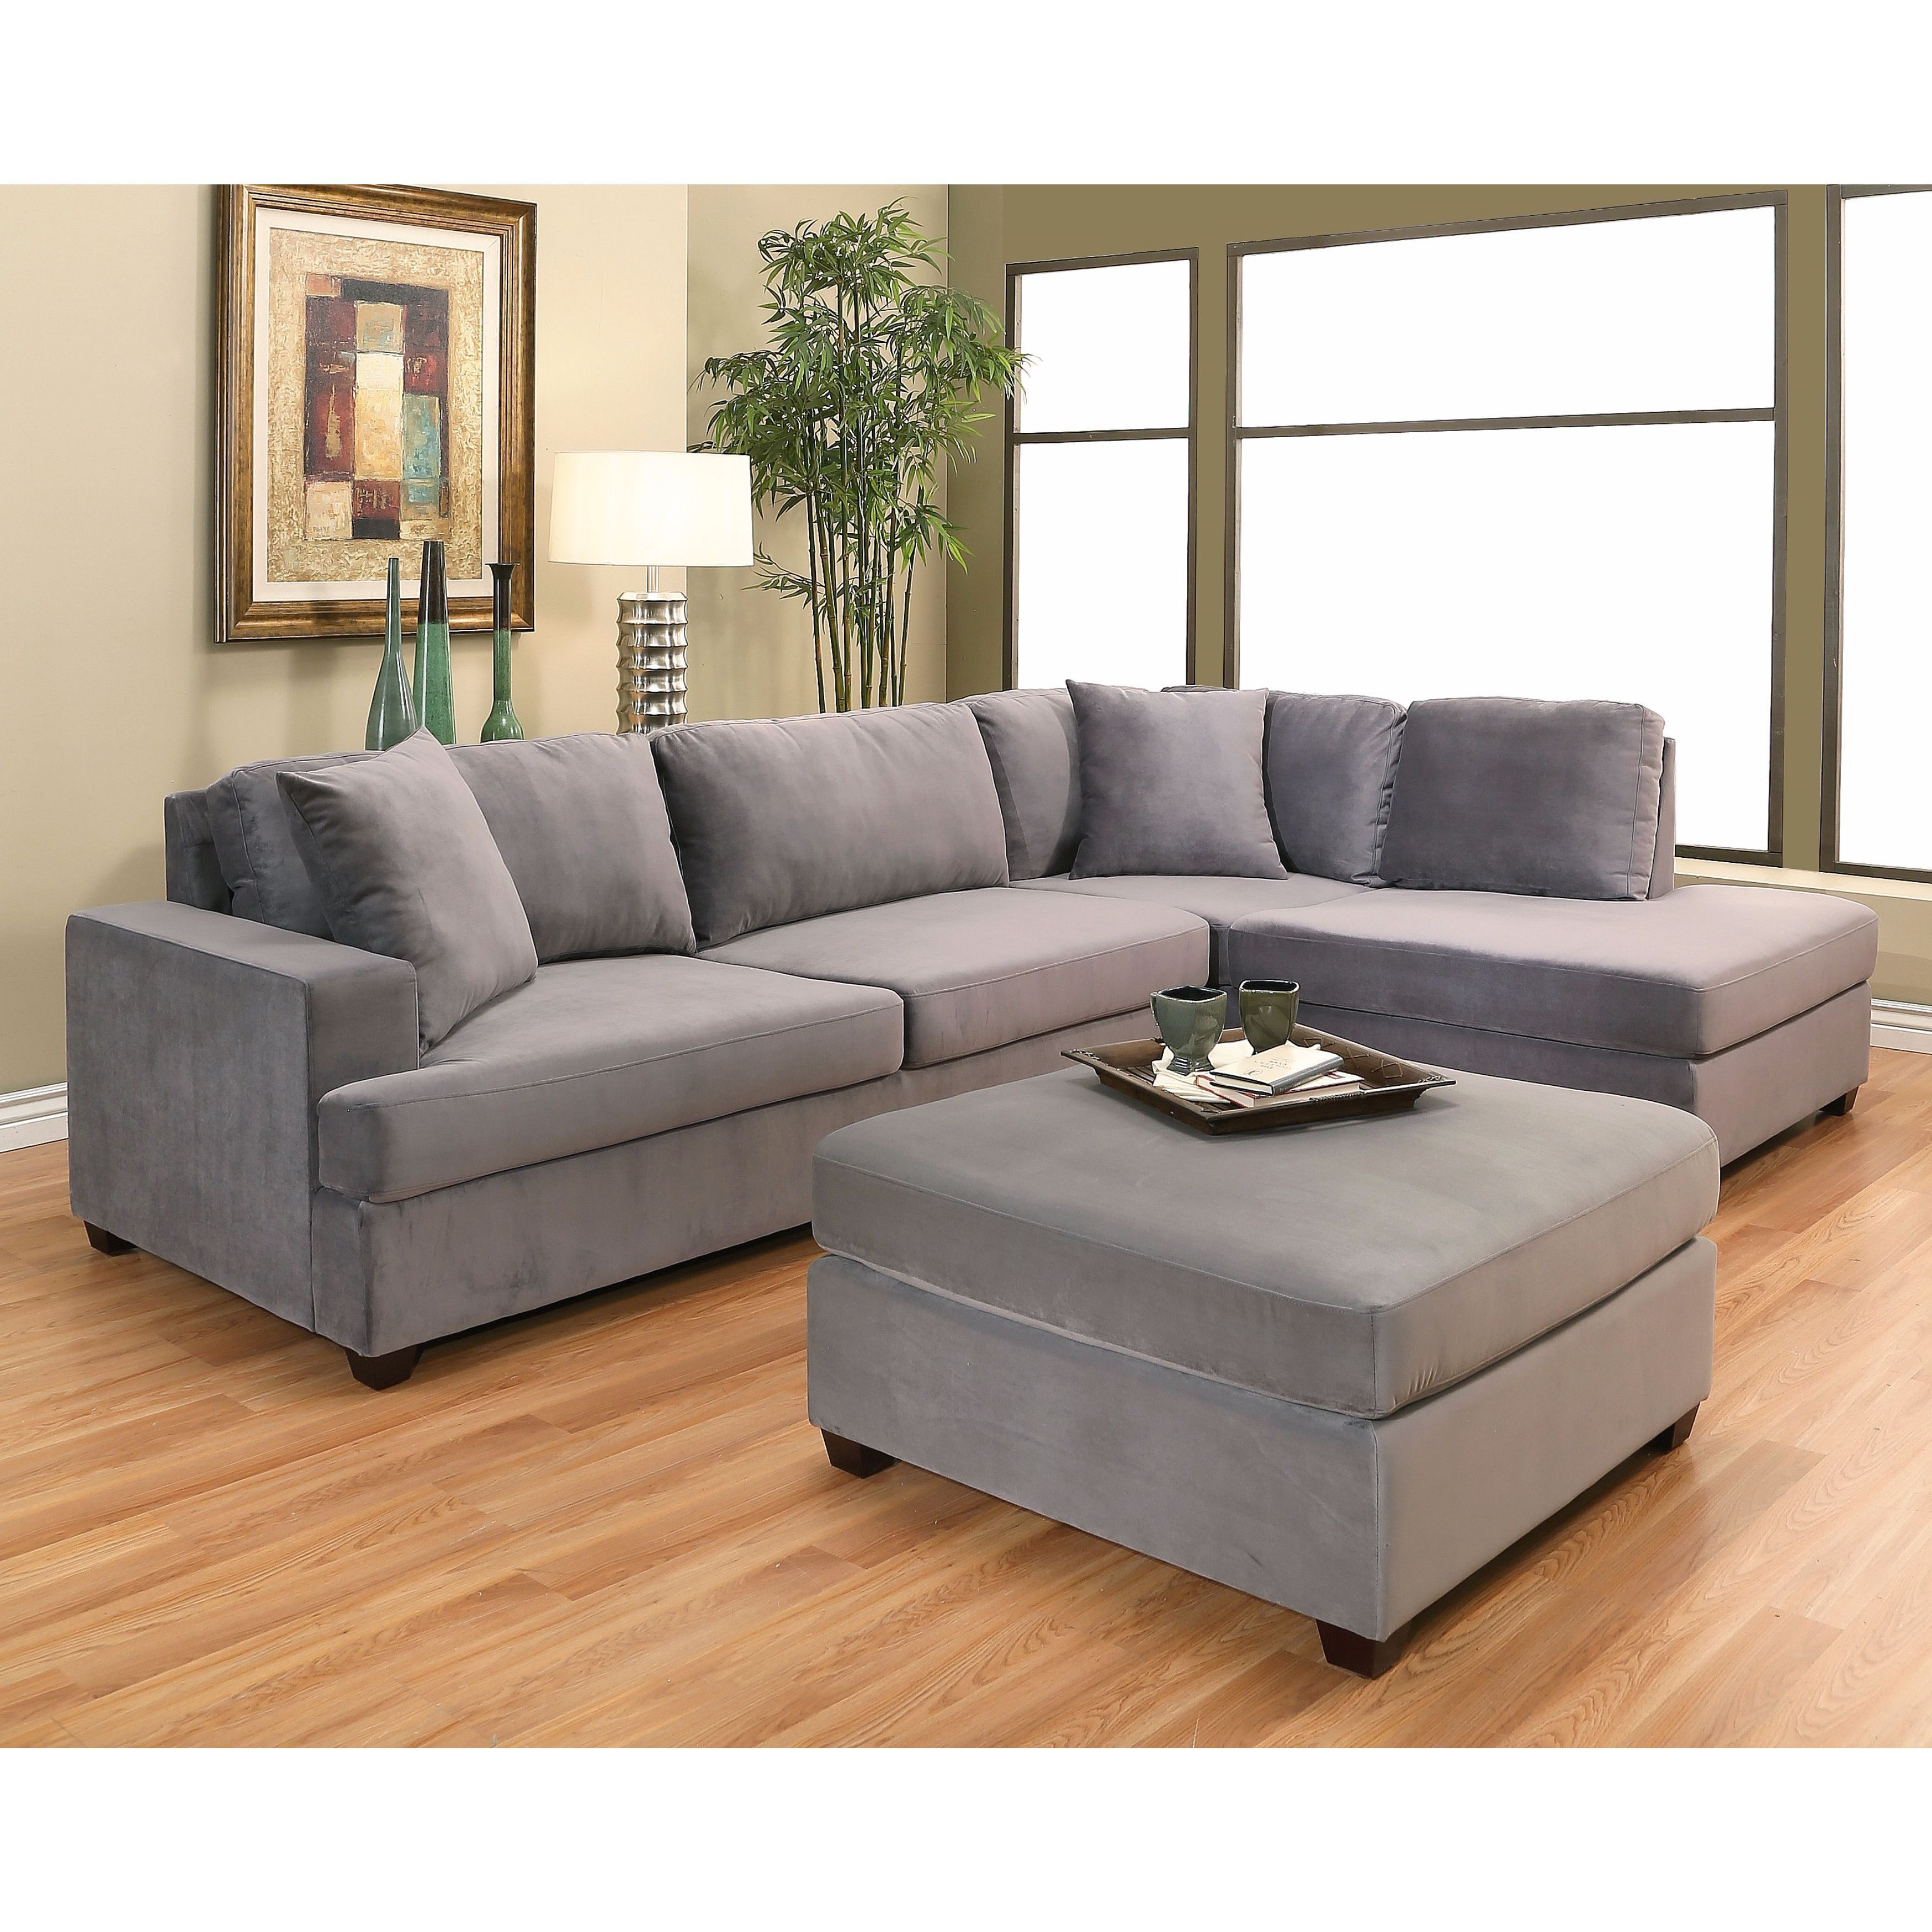 Grey Taupe Fabric Faux Suede Microfiber Velvet Sectional Sofas